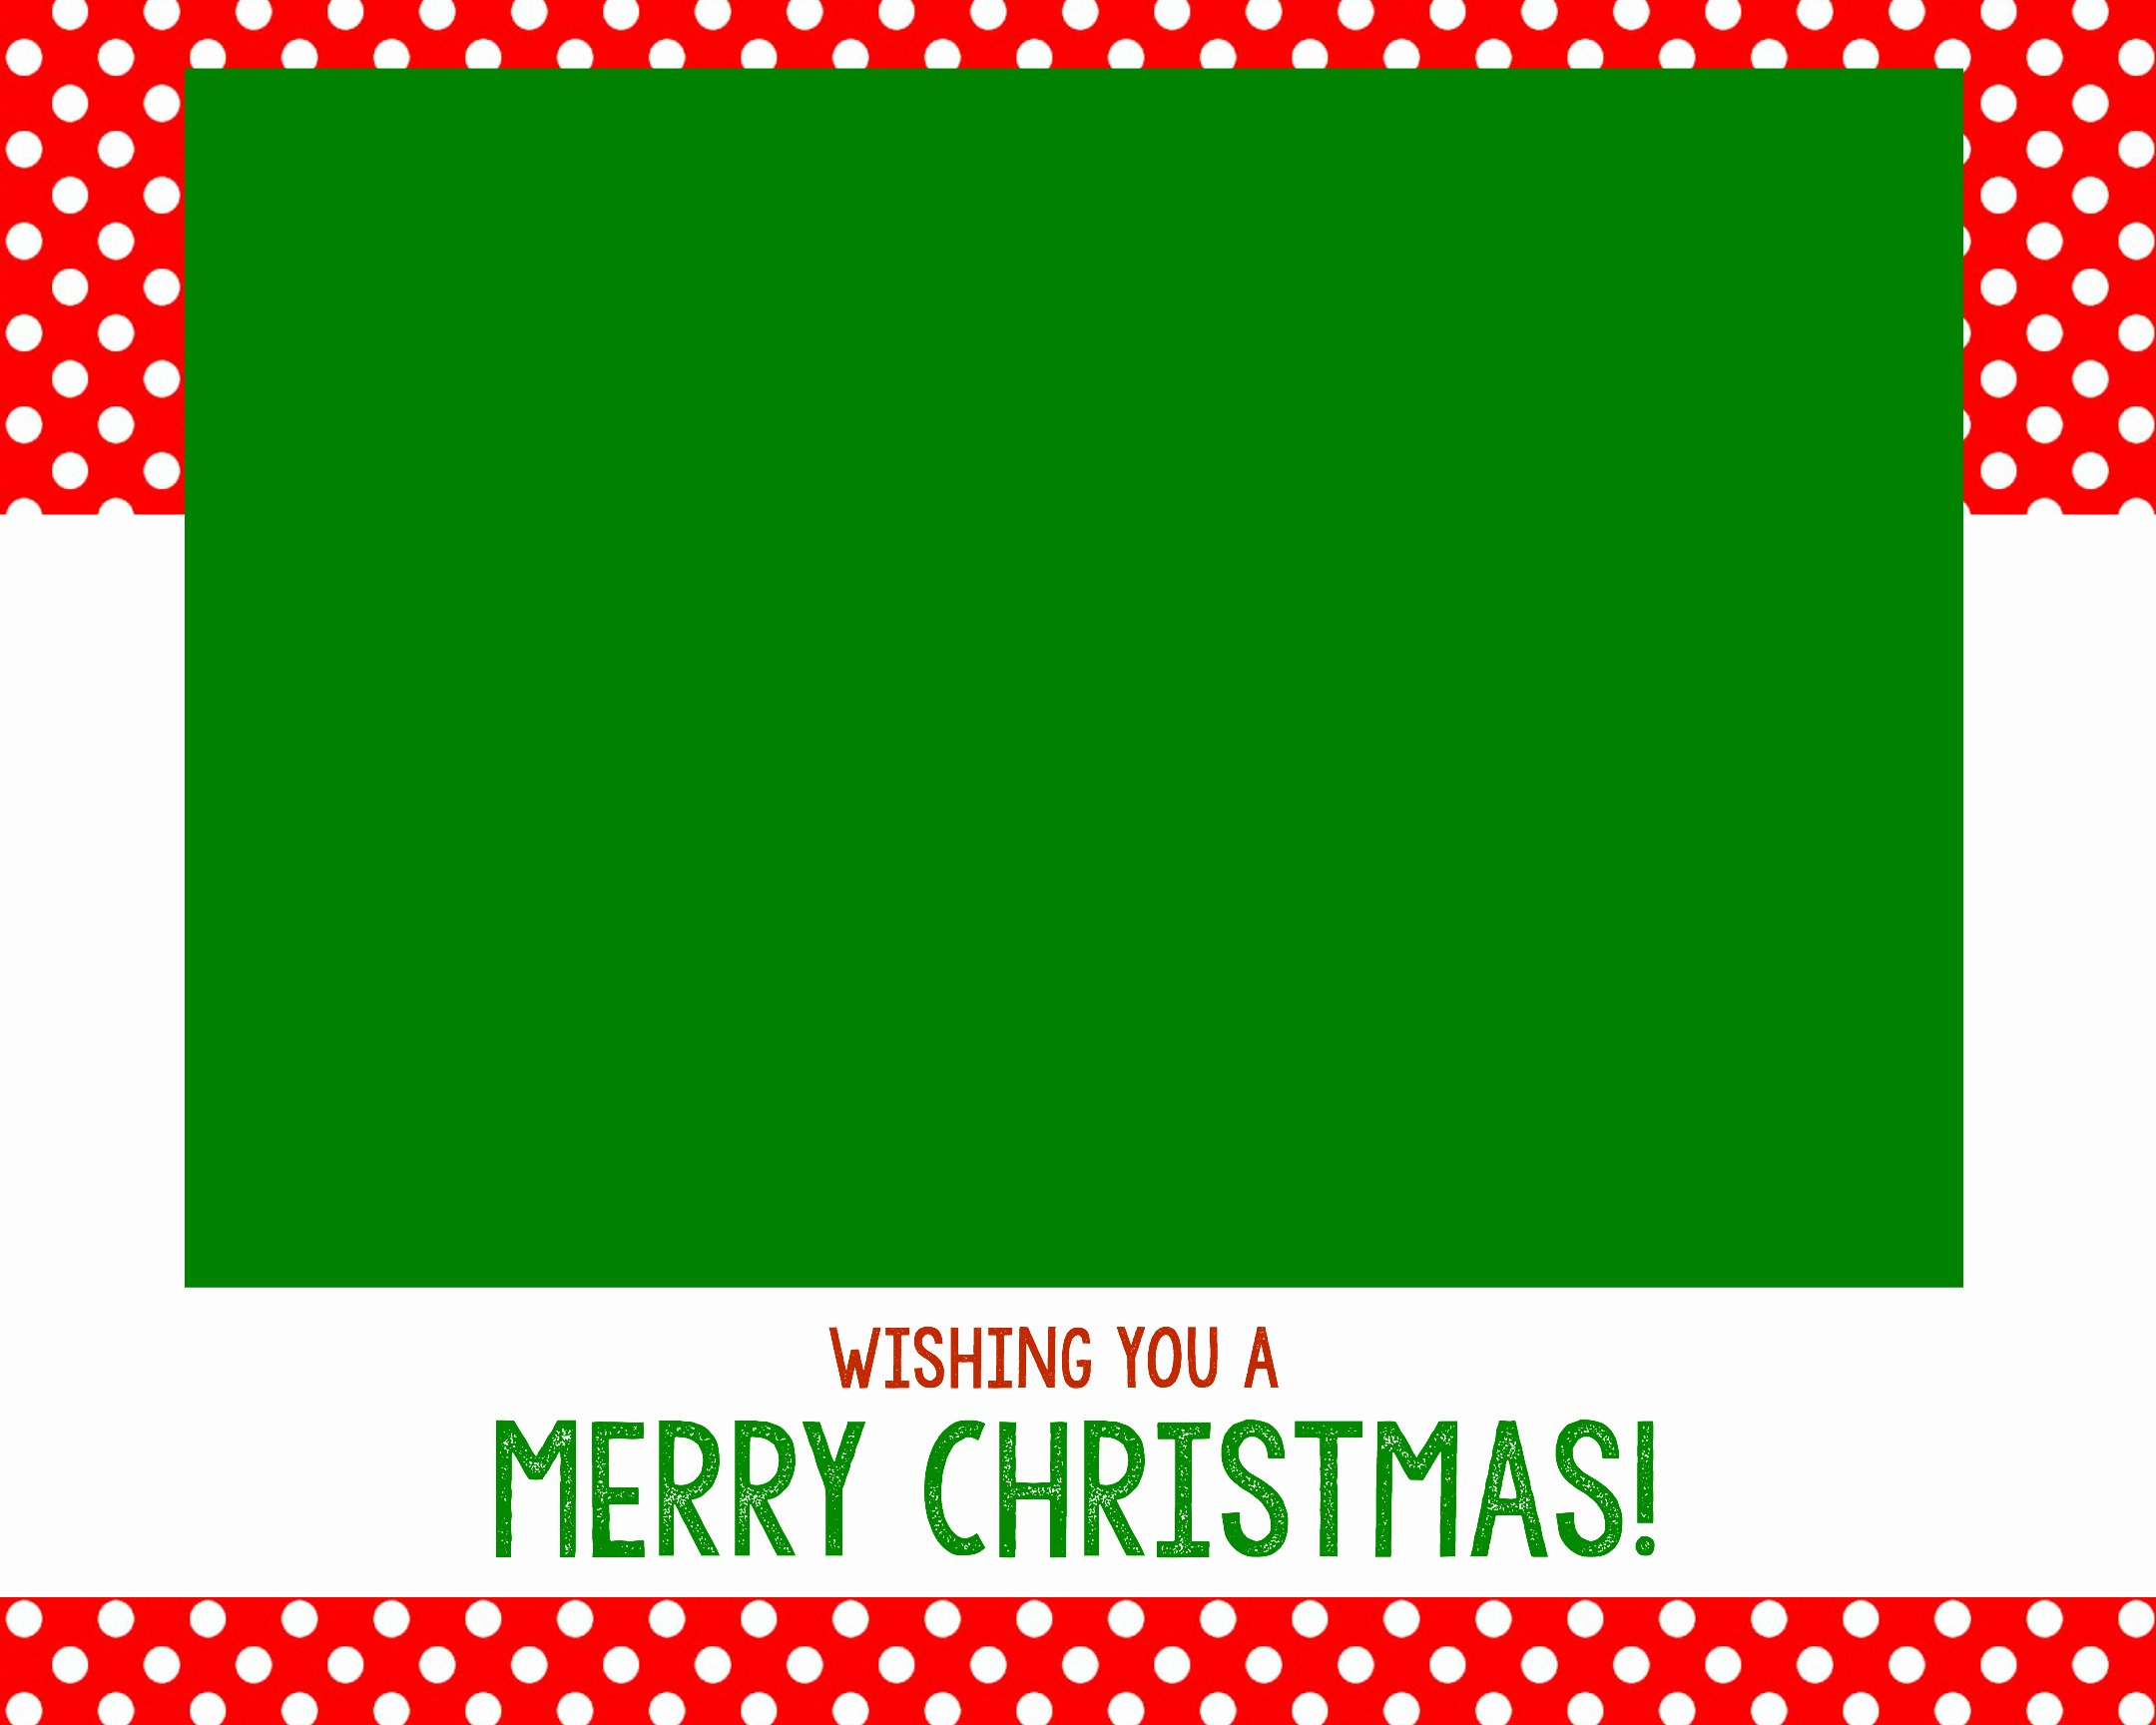 Christmas Card Template Photoshop New Free Christmas Card Templates Crazy Little Projects